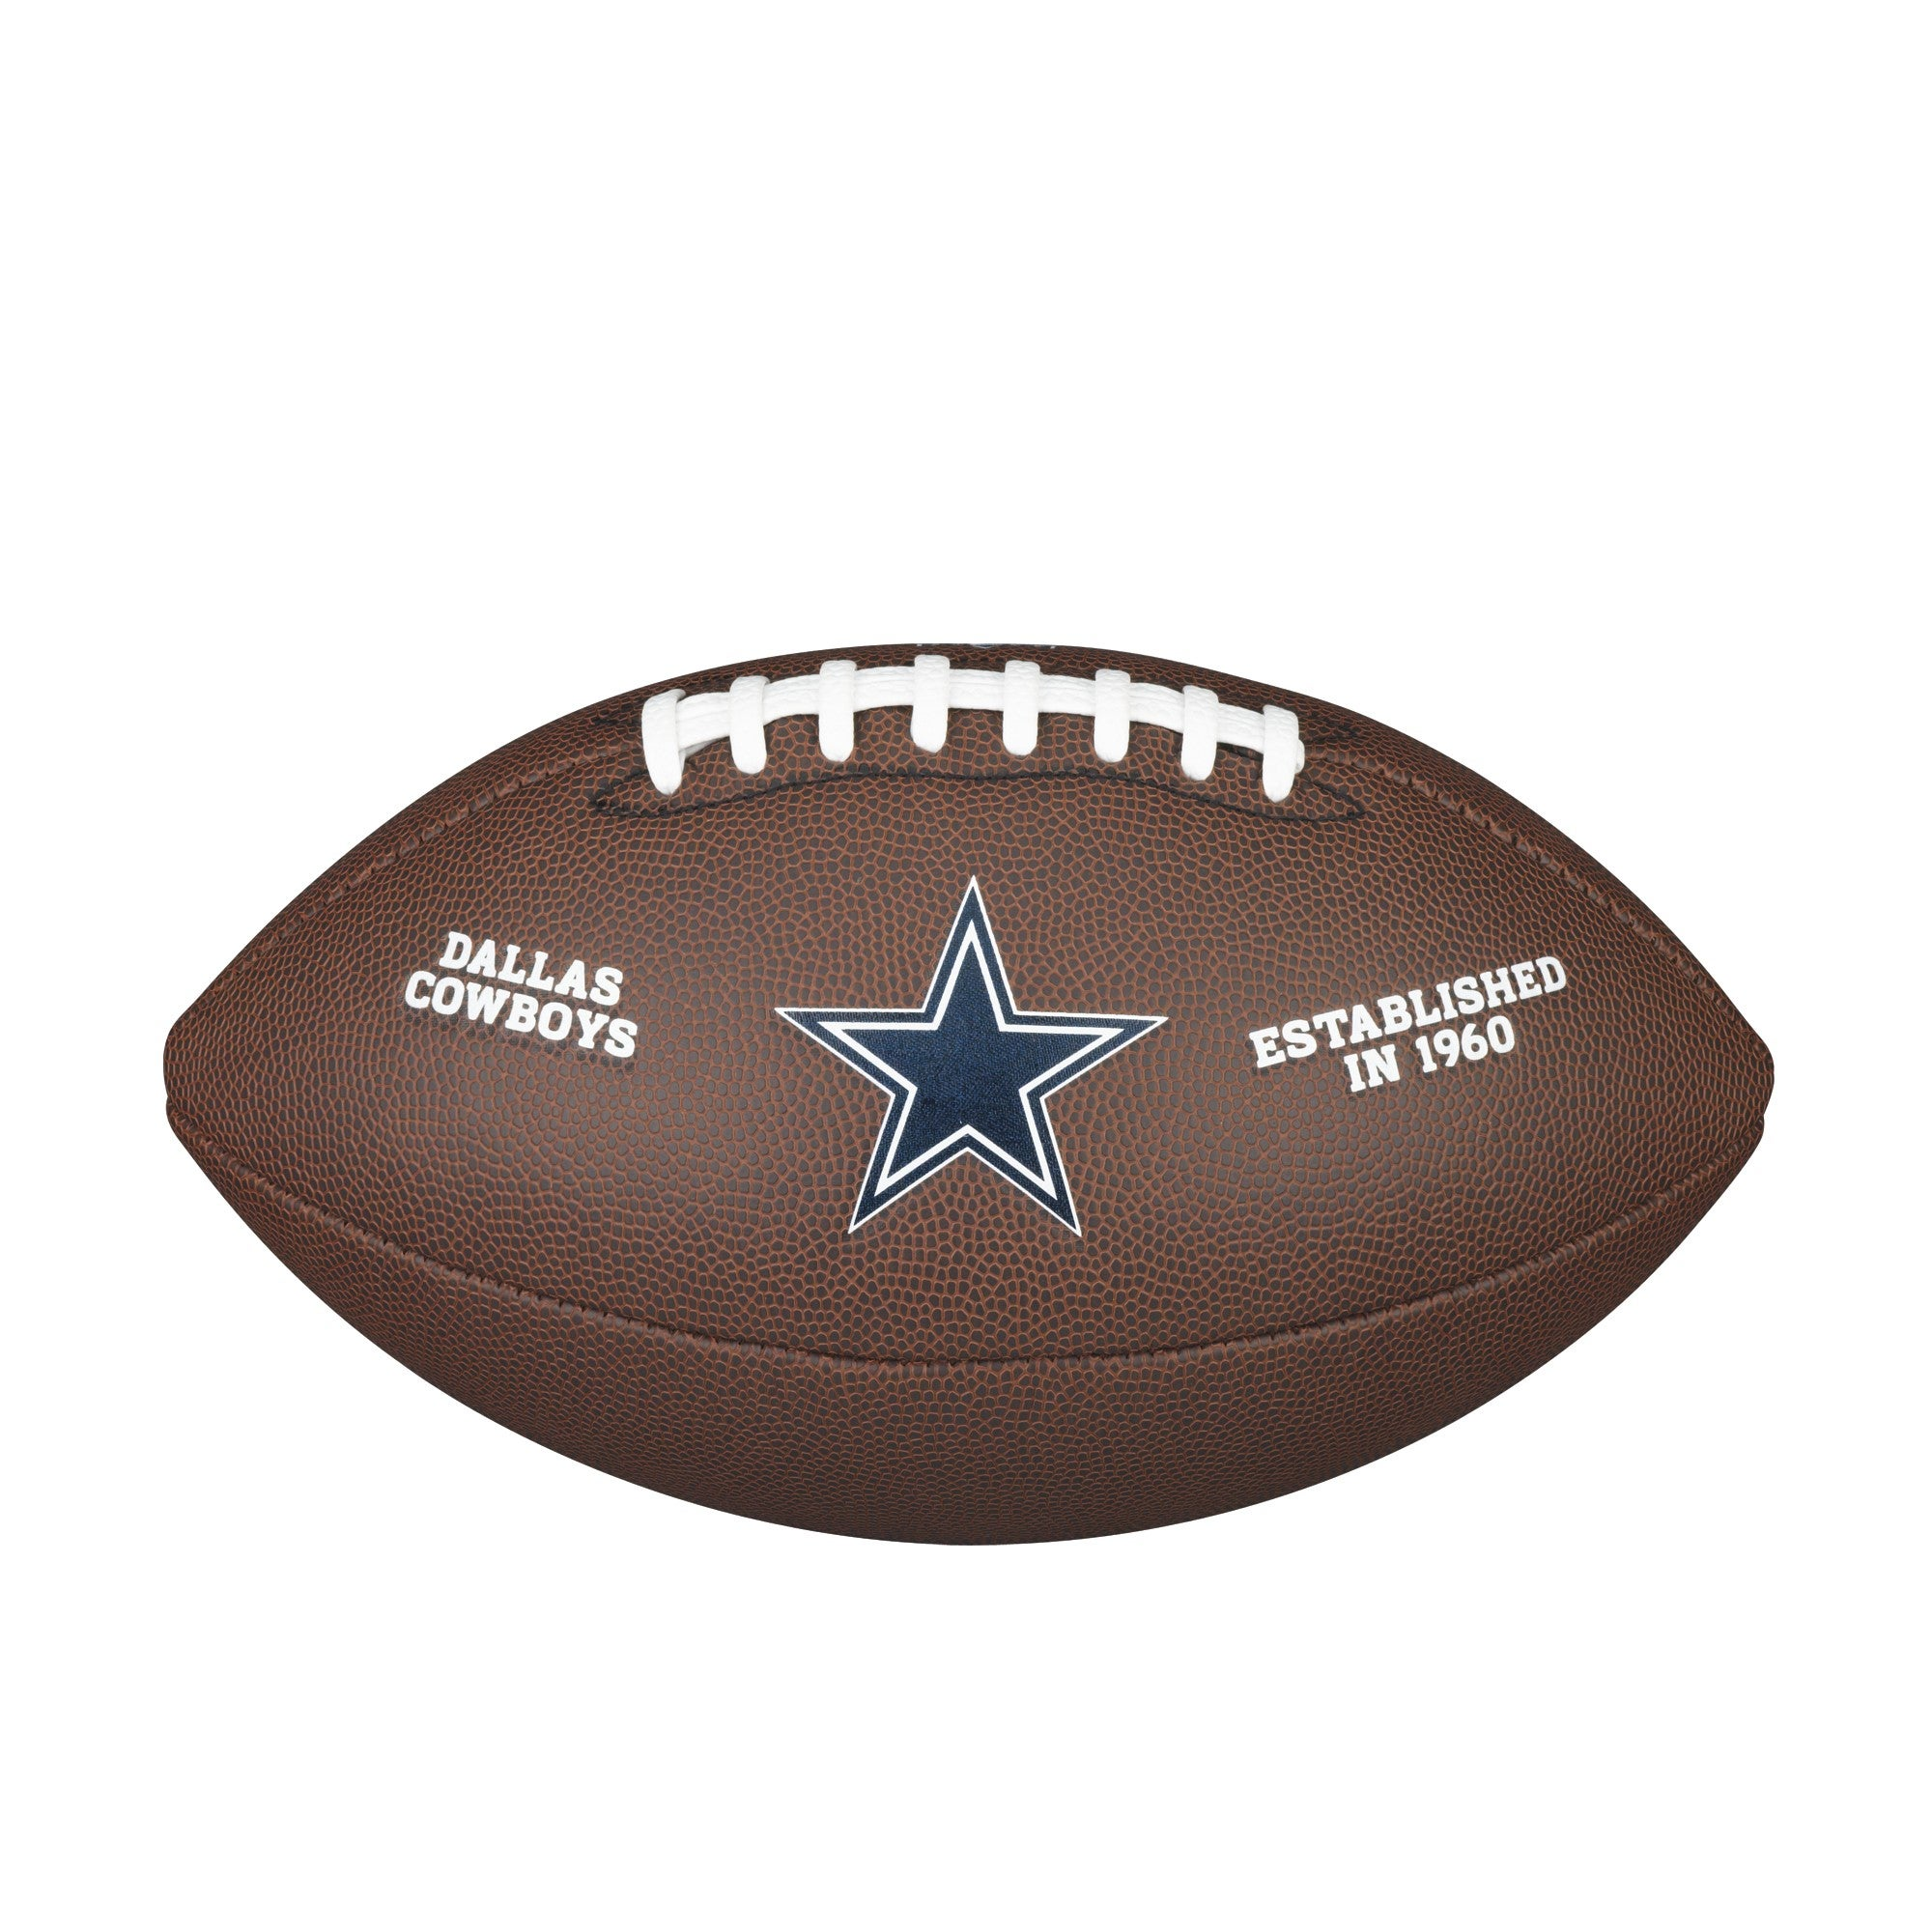 NFL TEAM LOGO COMPOSITE FOOTBALL - OFFICIAL, DALLAS COWBOYS